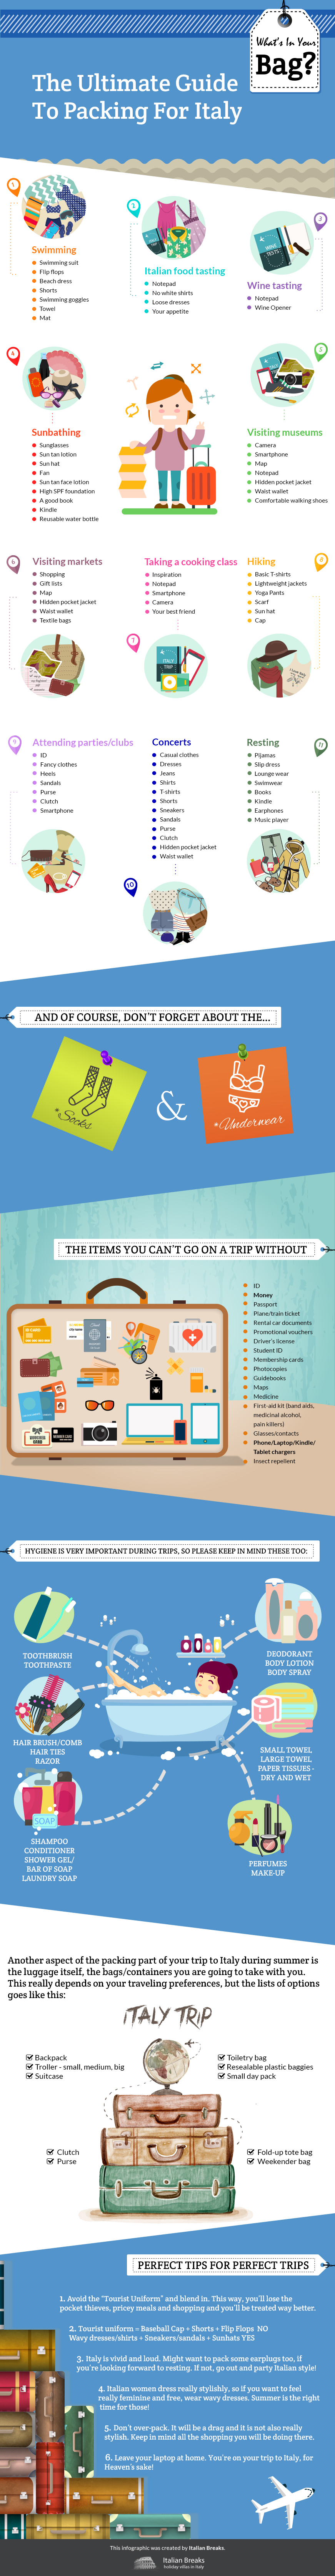 The Ultimate Guide to Packing for Italy